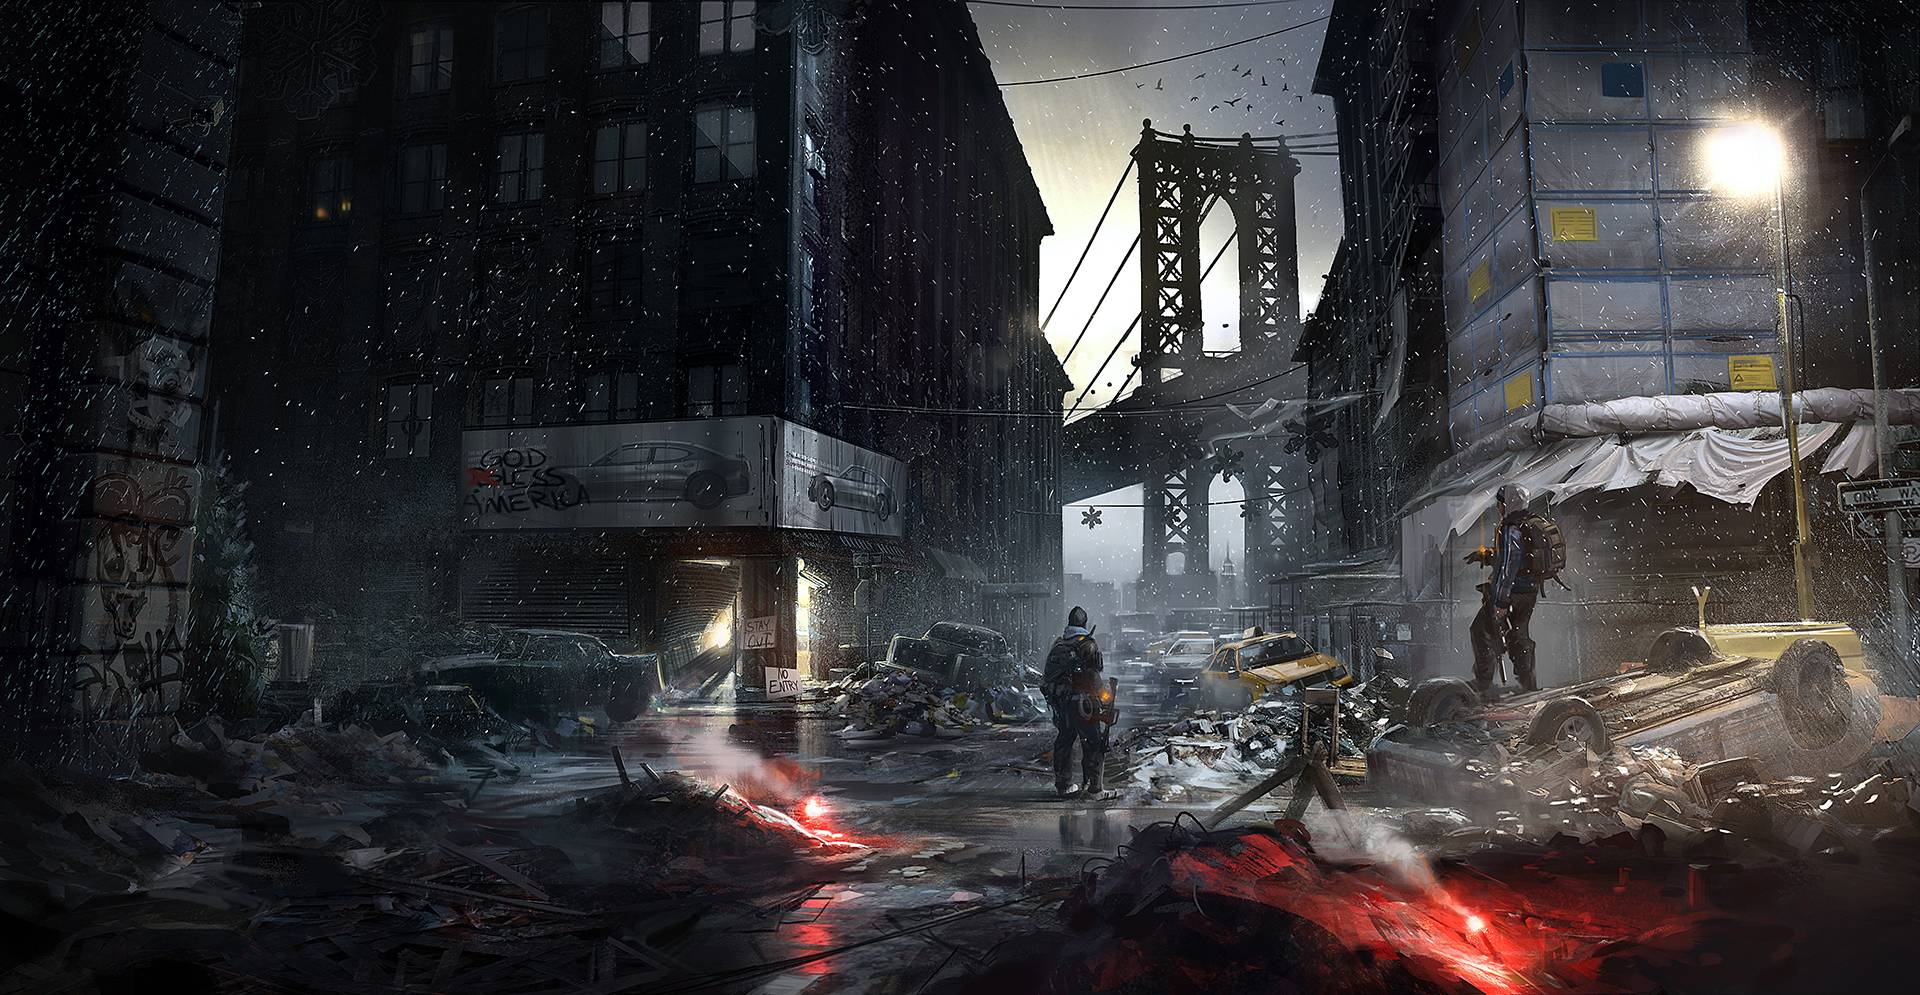 Free download The Division wallpaper 2 [1920x995] for your Desktop